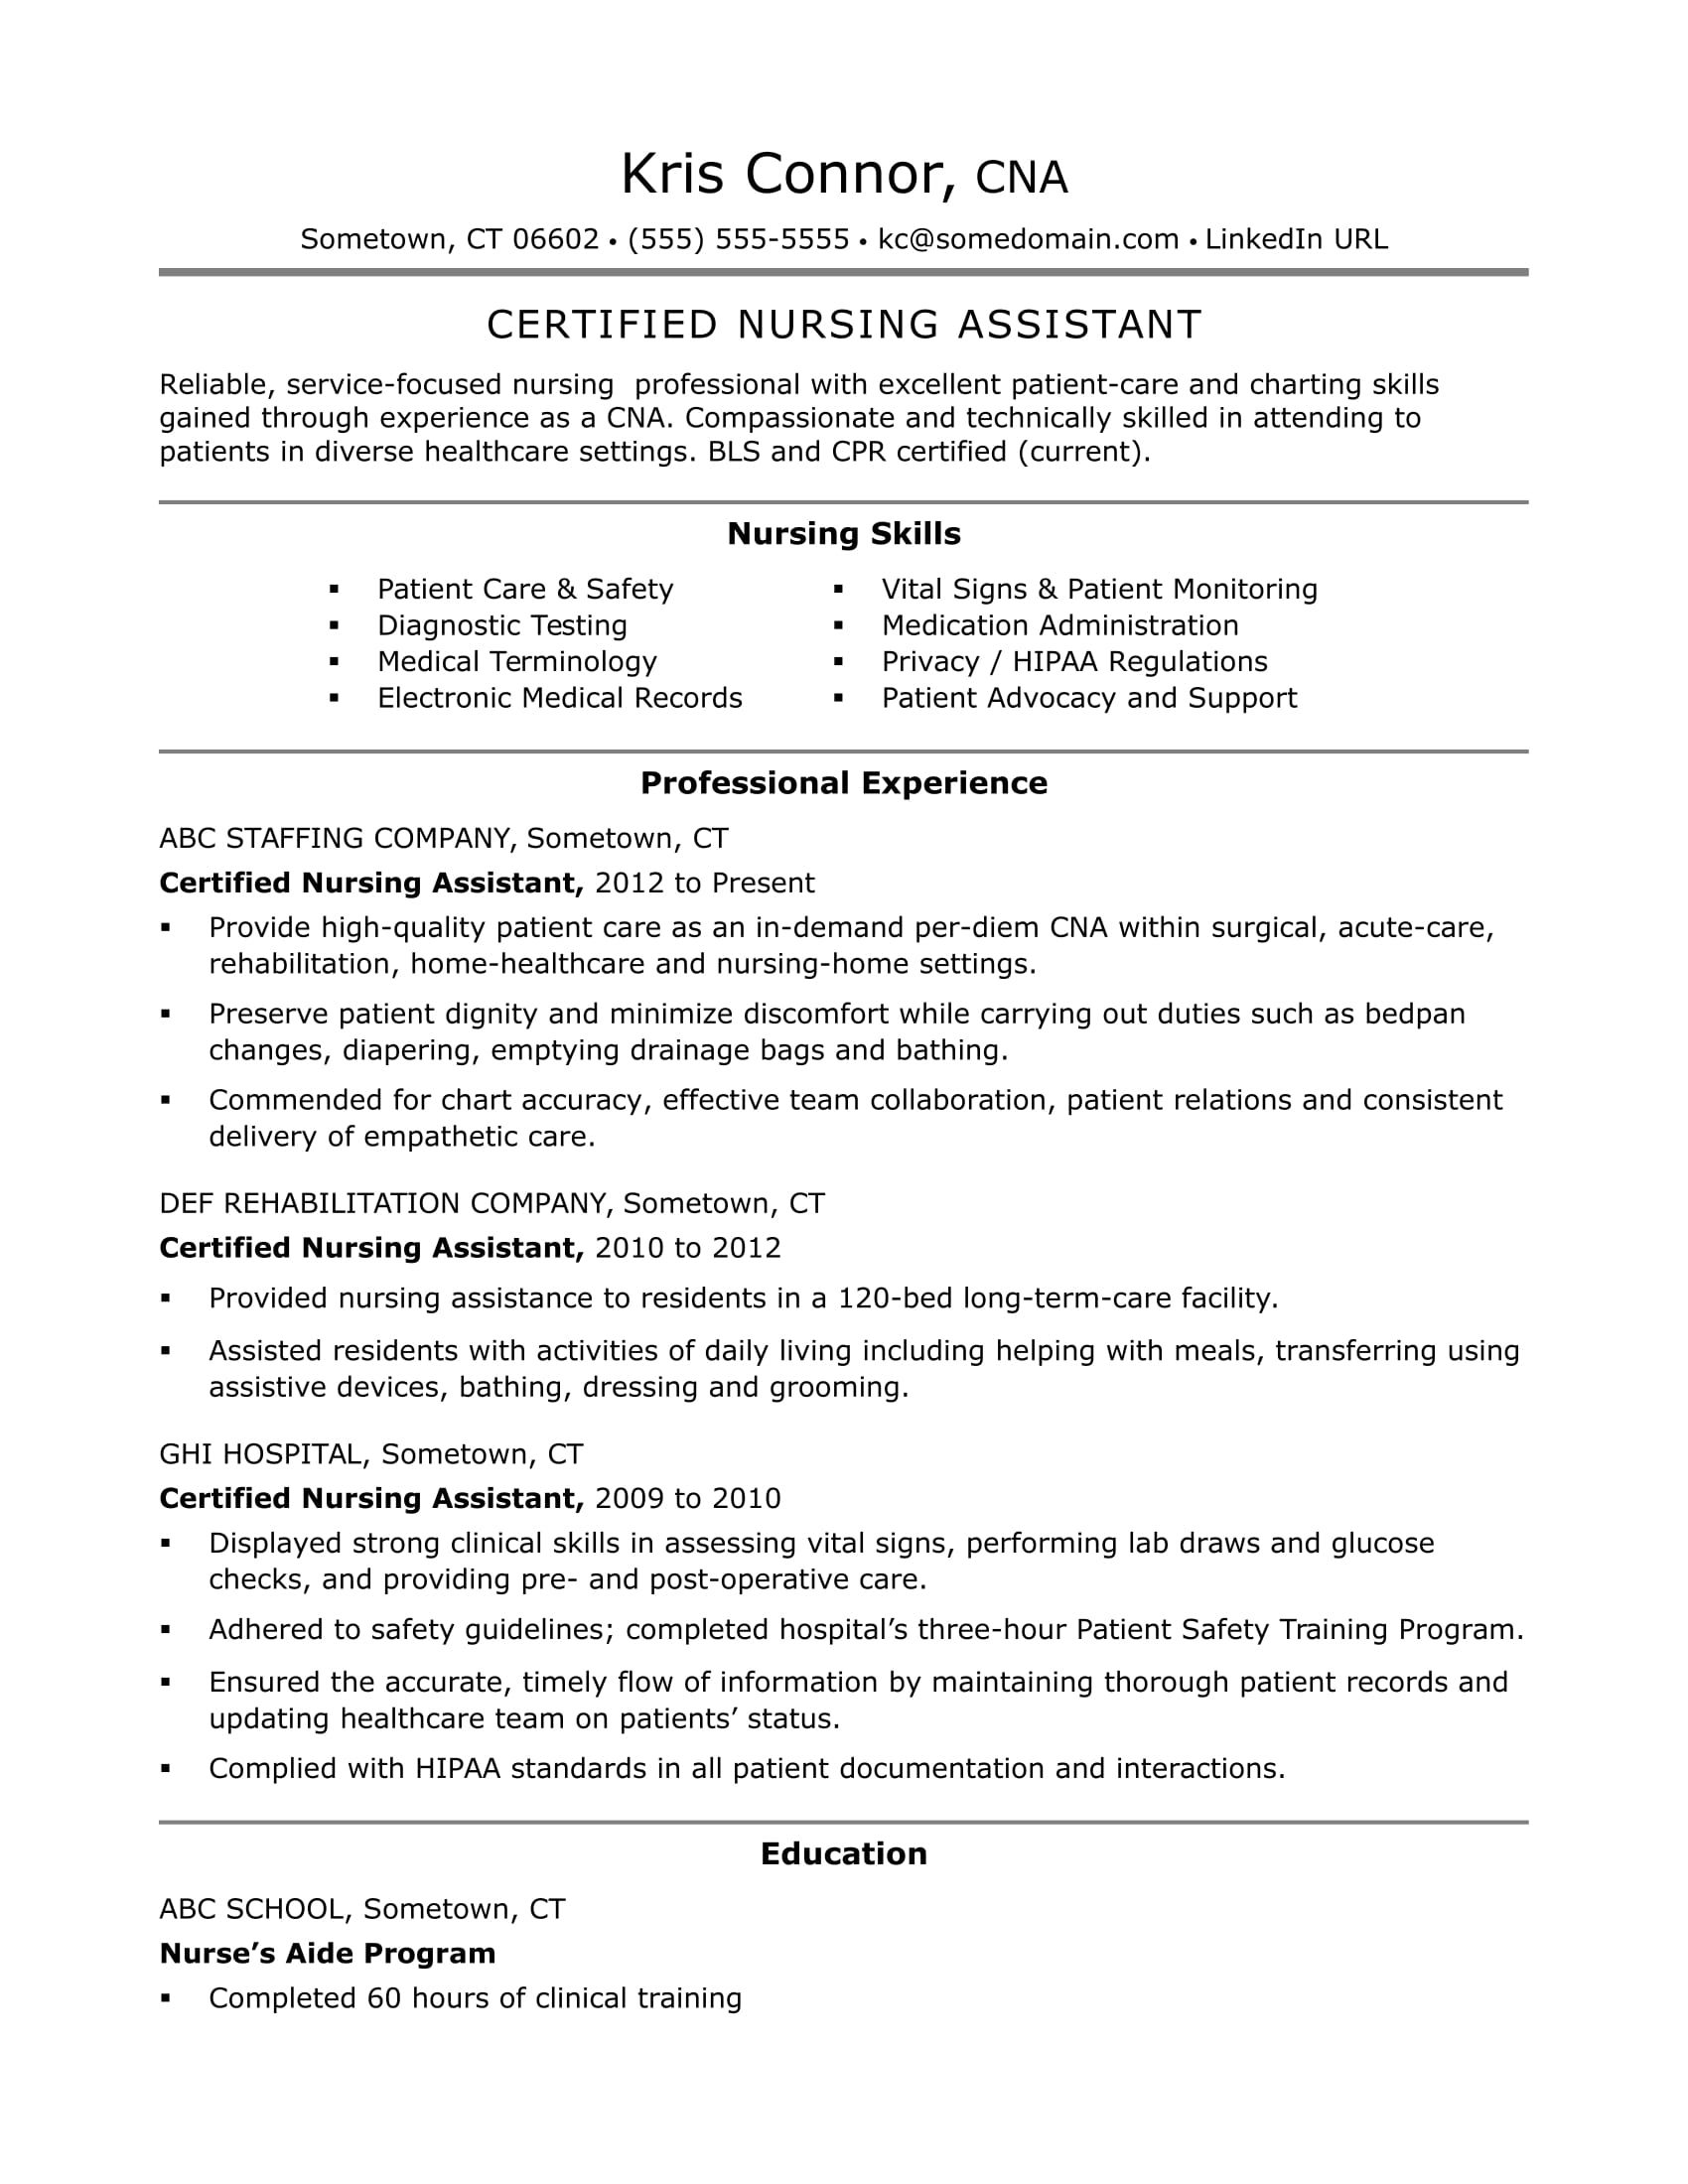 cna resume example - Sample Resume For Rehab Nurse